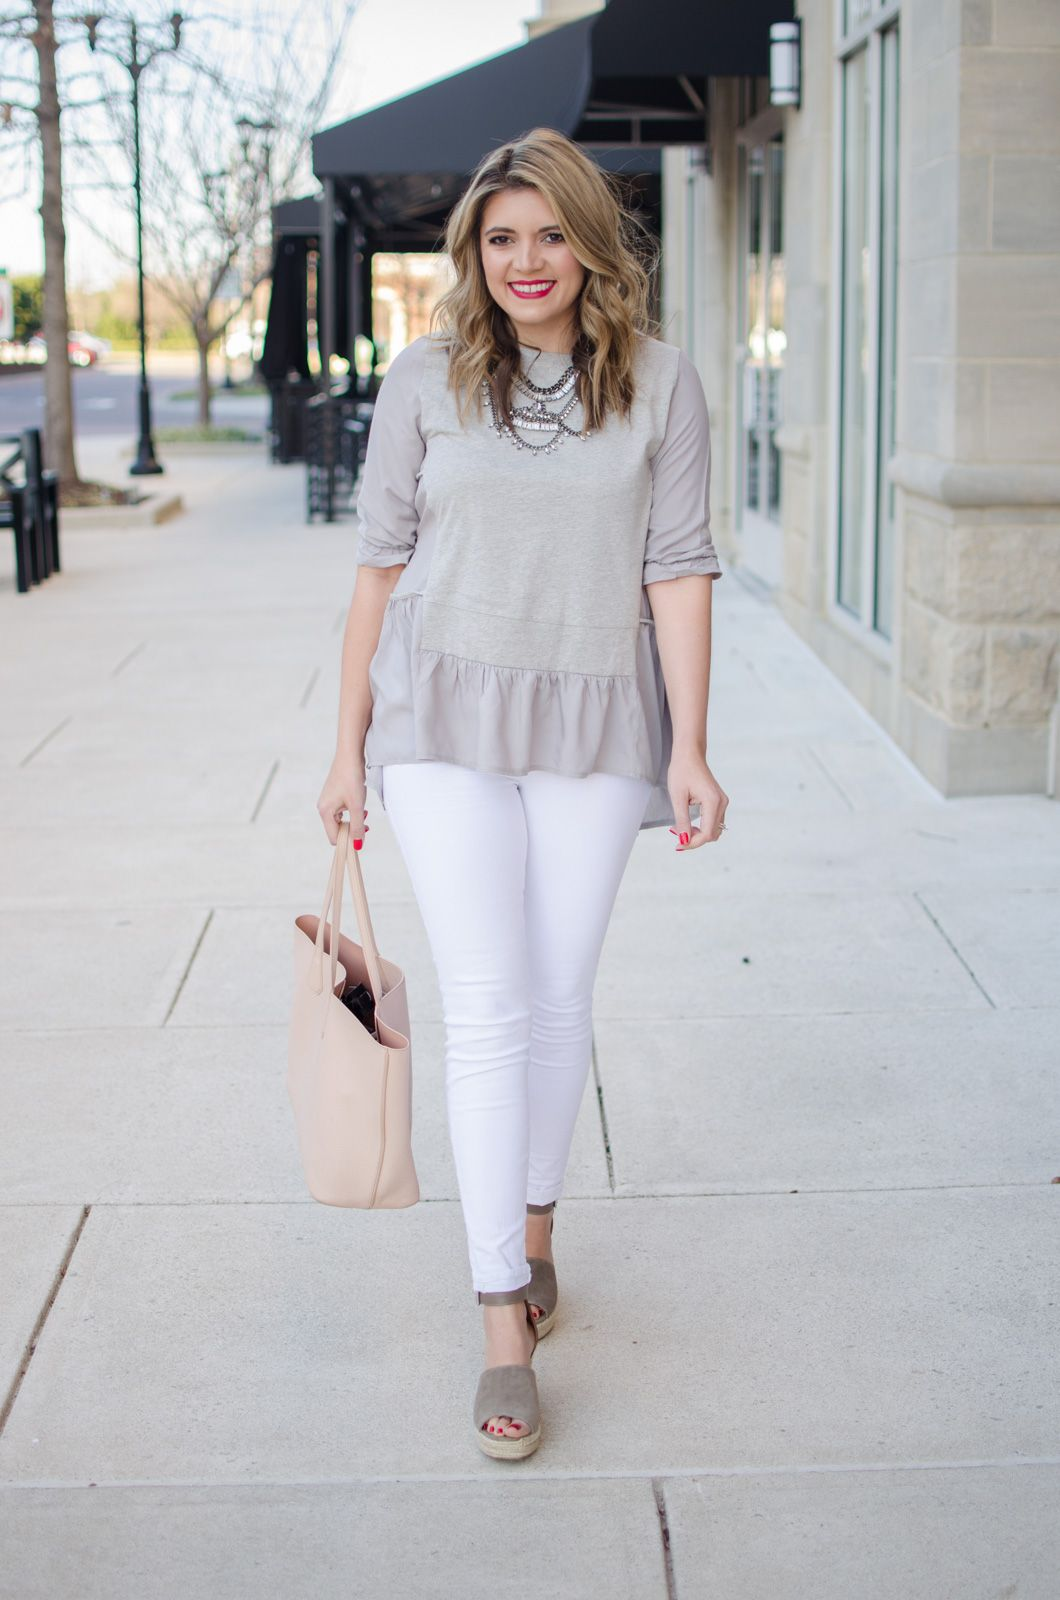 fc285a40cdd early spring outfit idea - gray ruffle tee with white jeans outfit. Click  through for more cute Spring outfits or to shop this look! bylaurenm.com